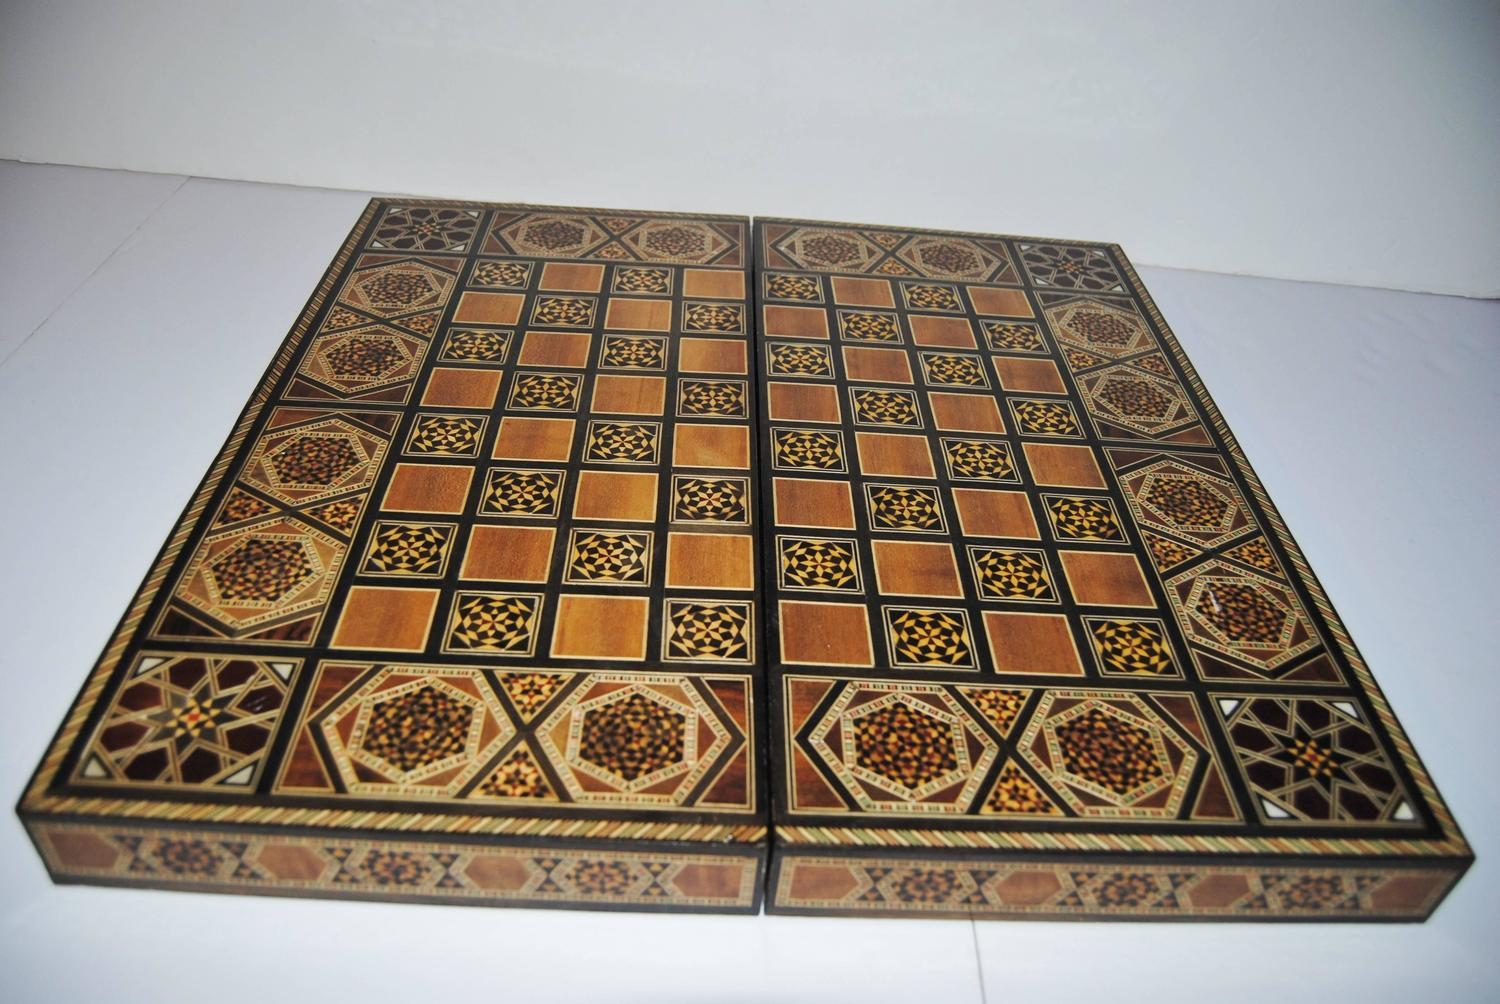 Handcrafted Games Syrian Handcrafted Backgammon Chess Board With Inlaid